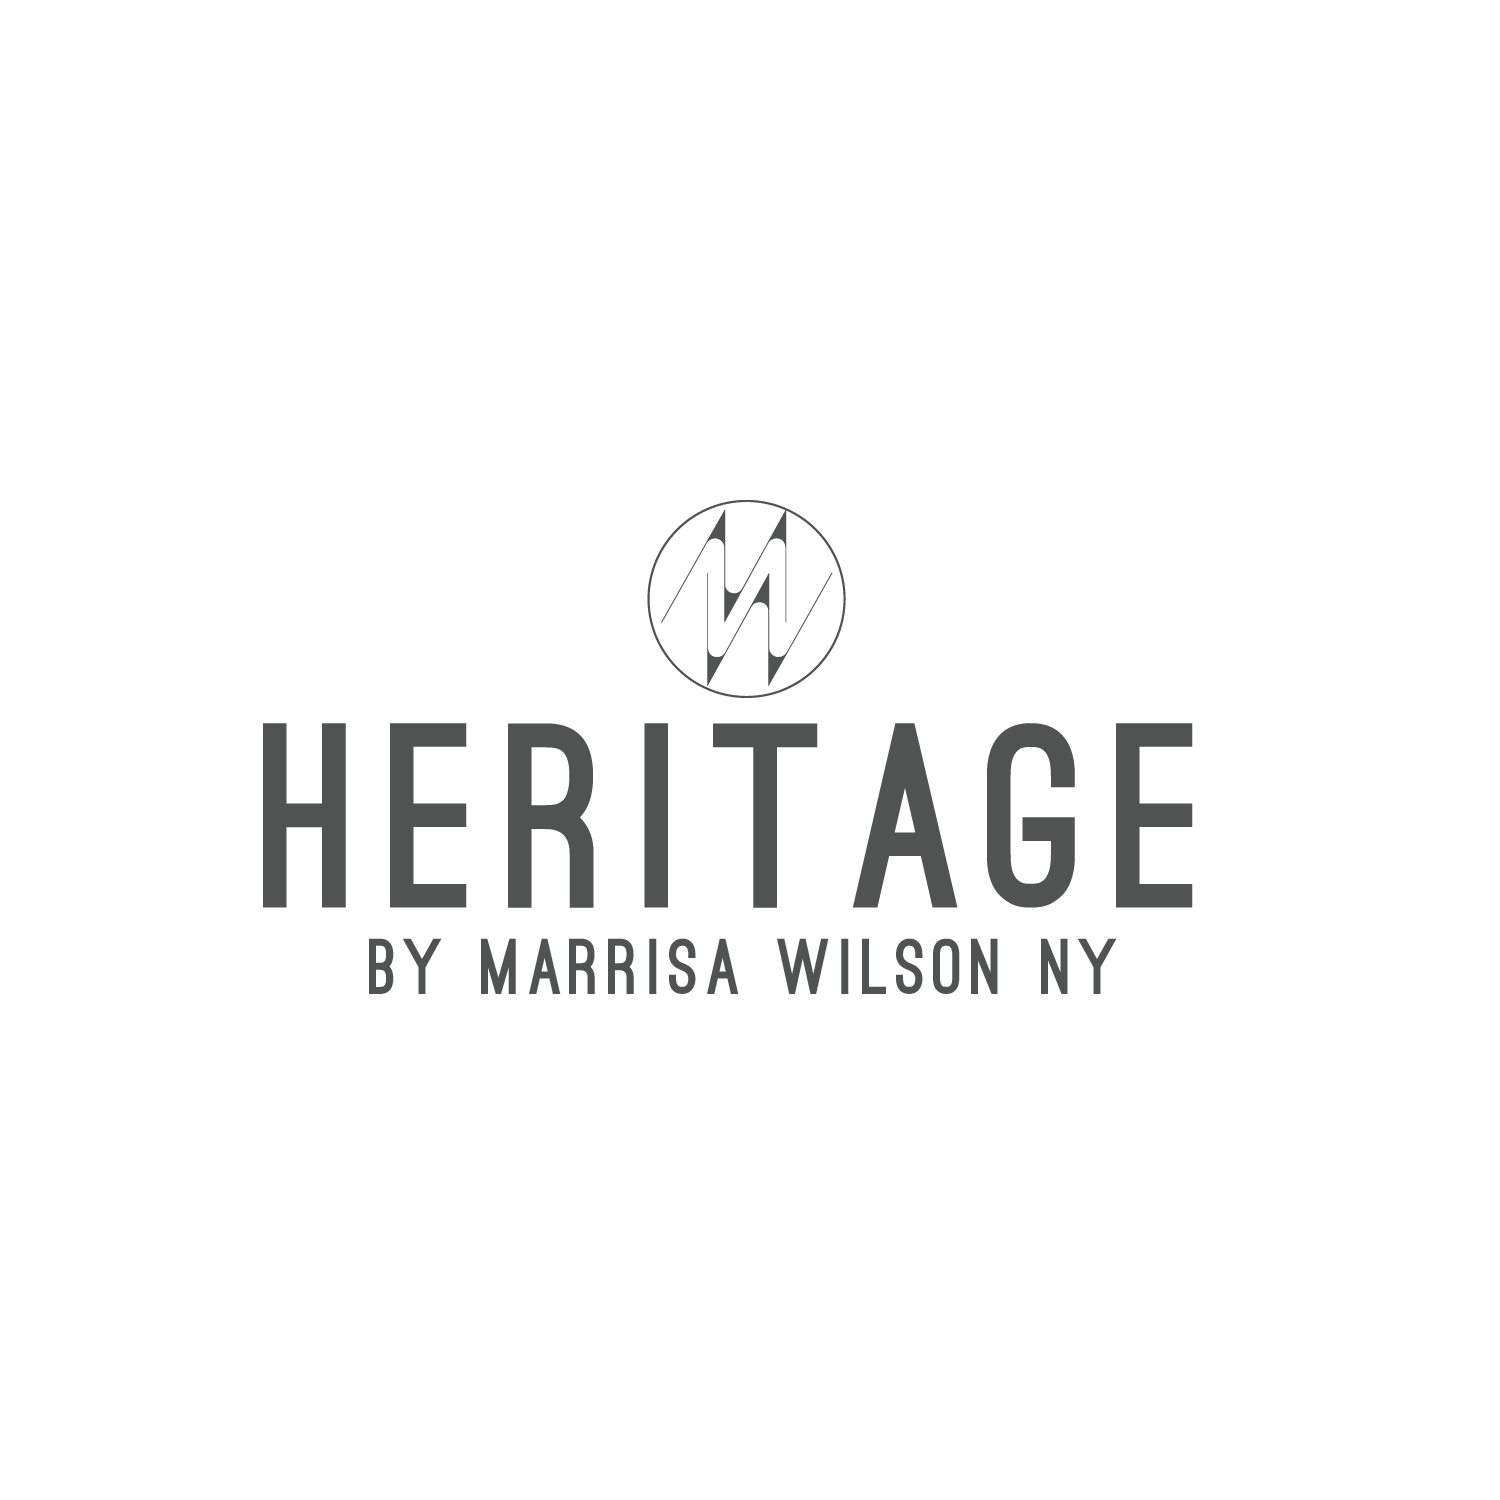 heritage-by-marrisa-wilson-ny.png